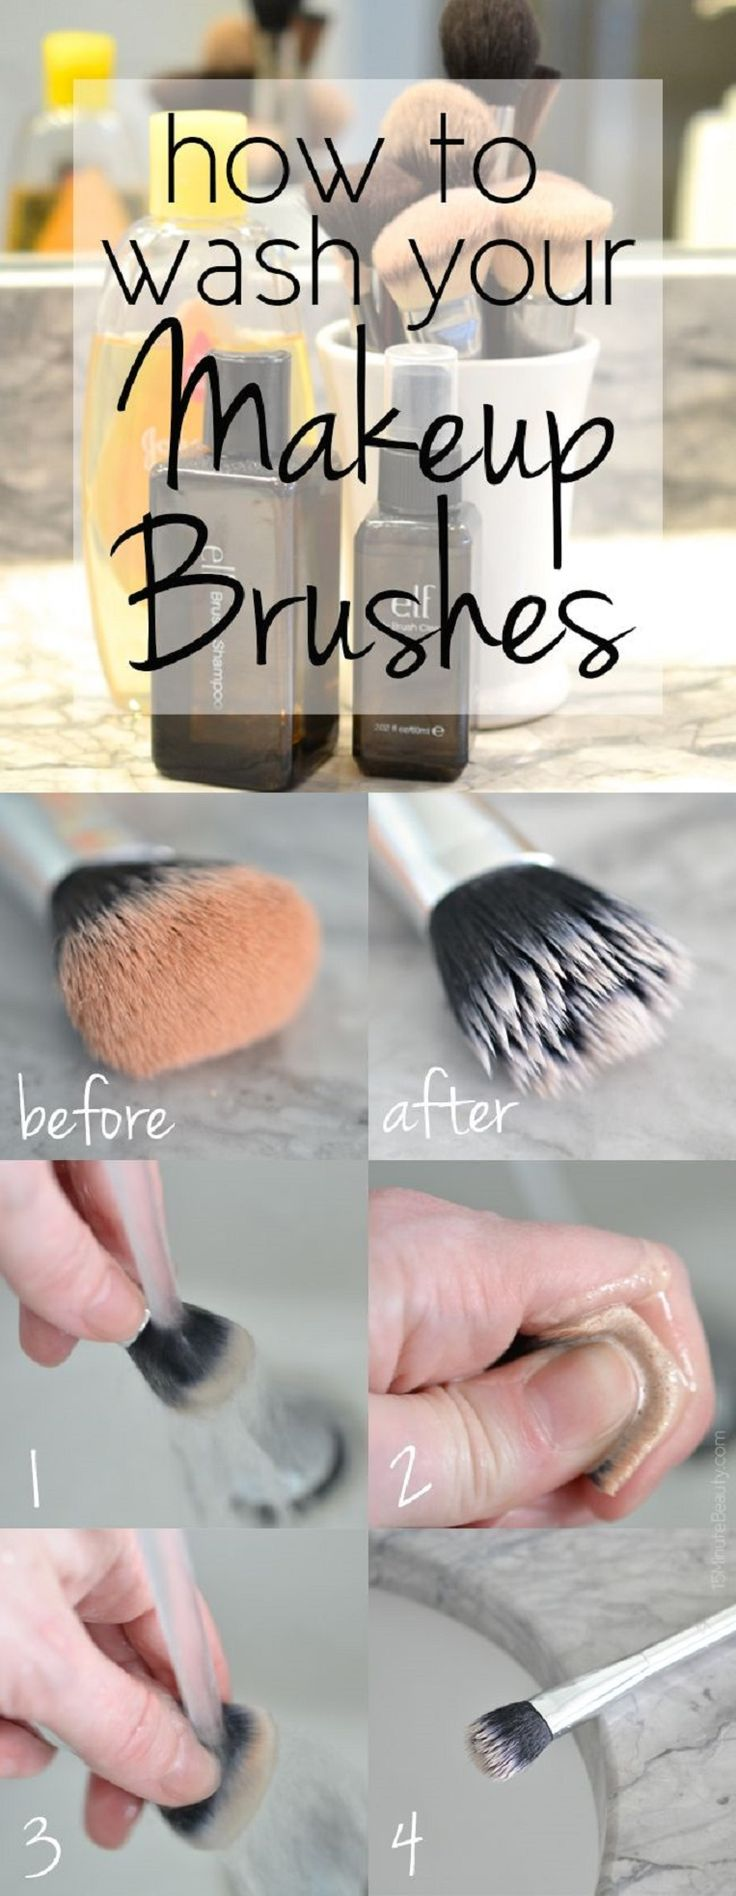 Beauty Rx: Cleaning Makeup Brushes